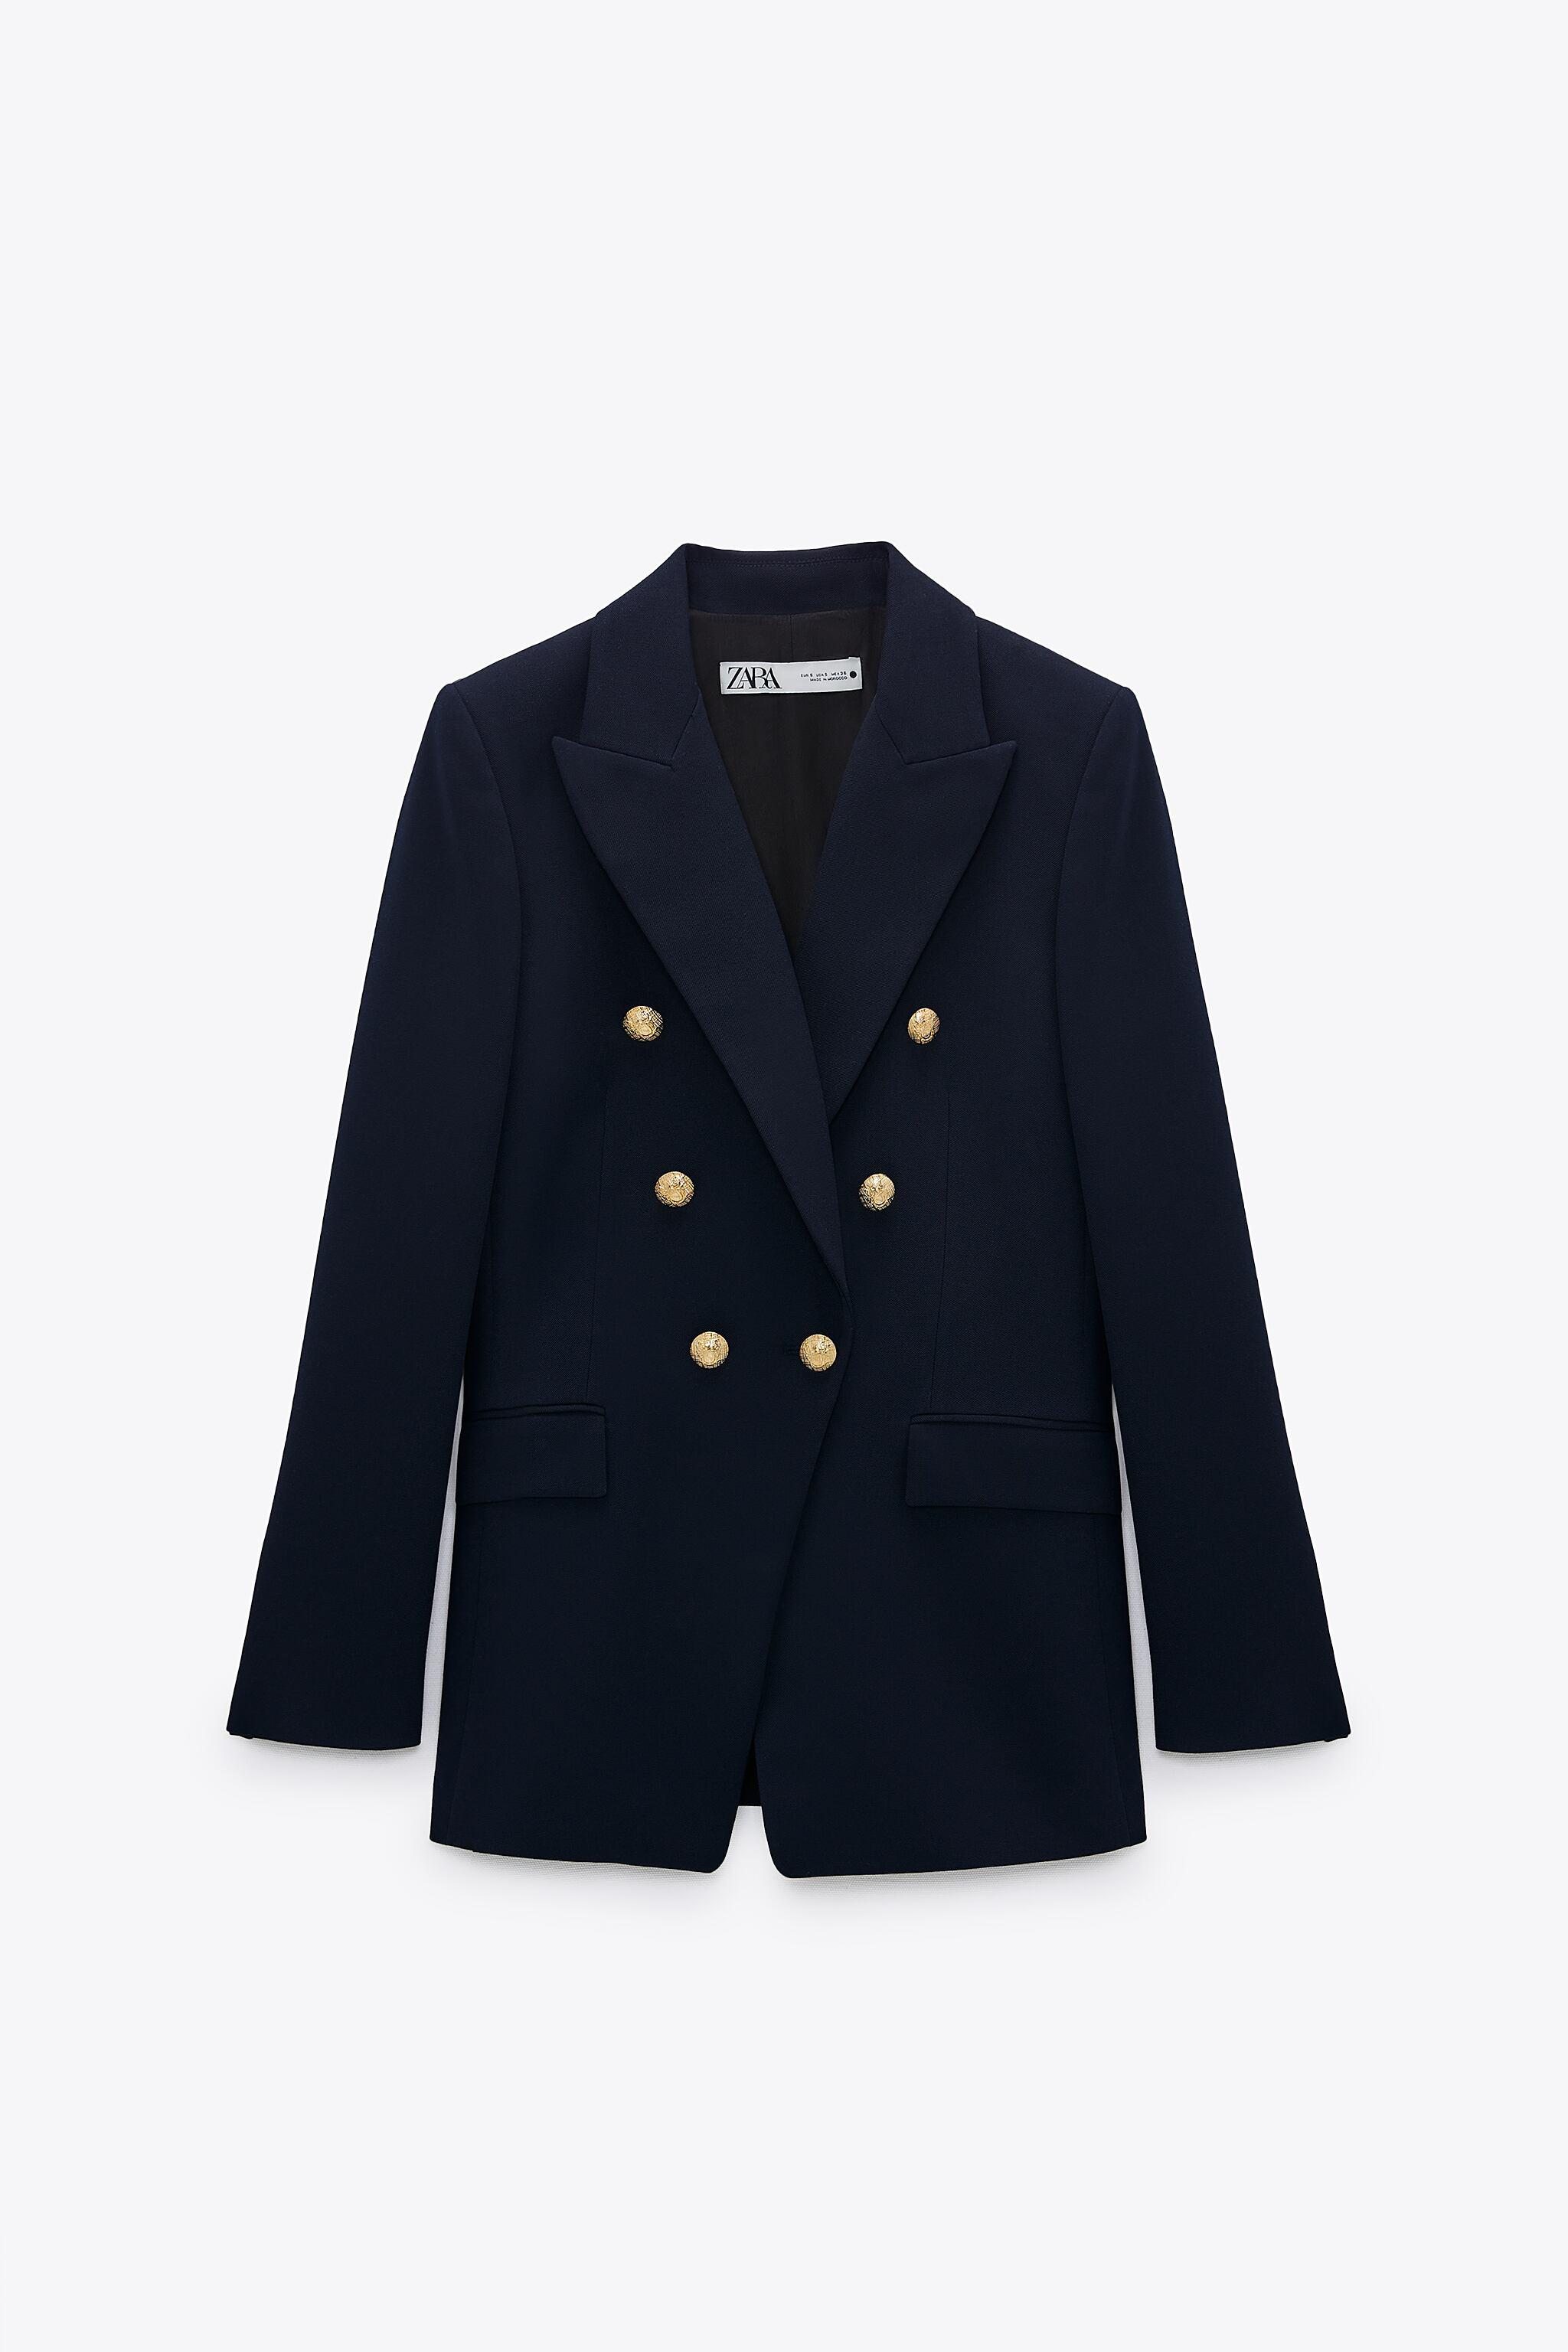 TAILORED BLAZER WITH BUTTONS 7